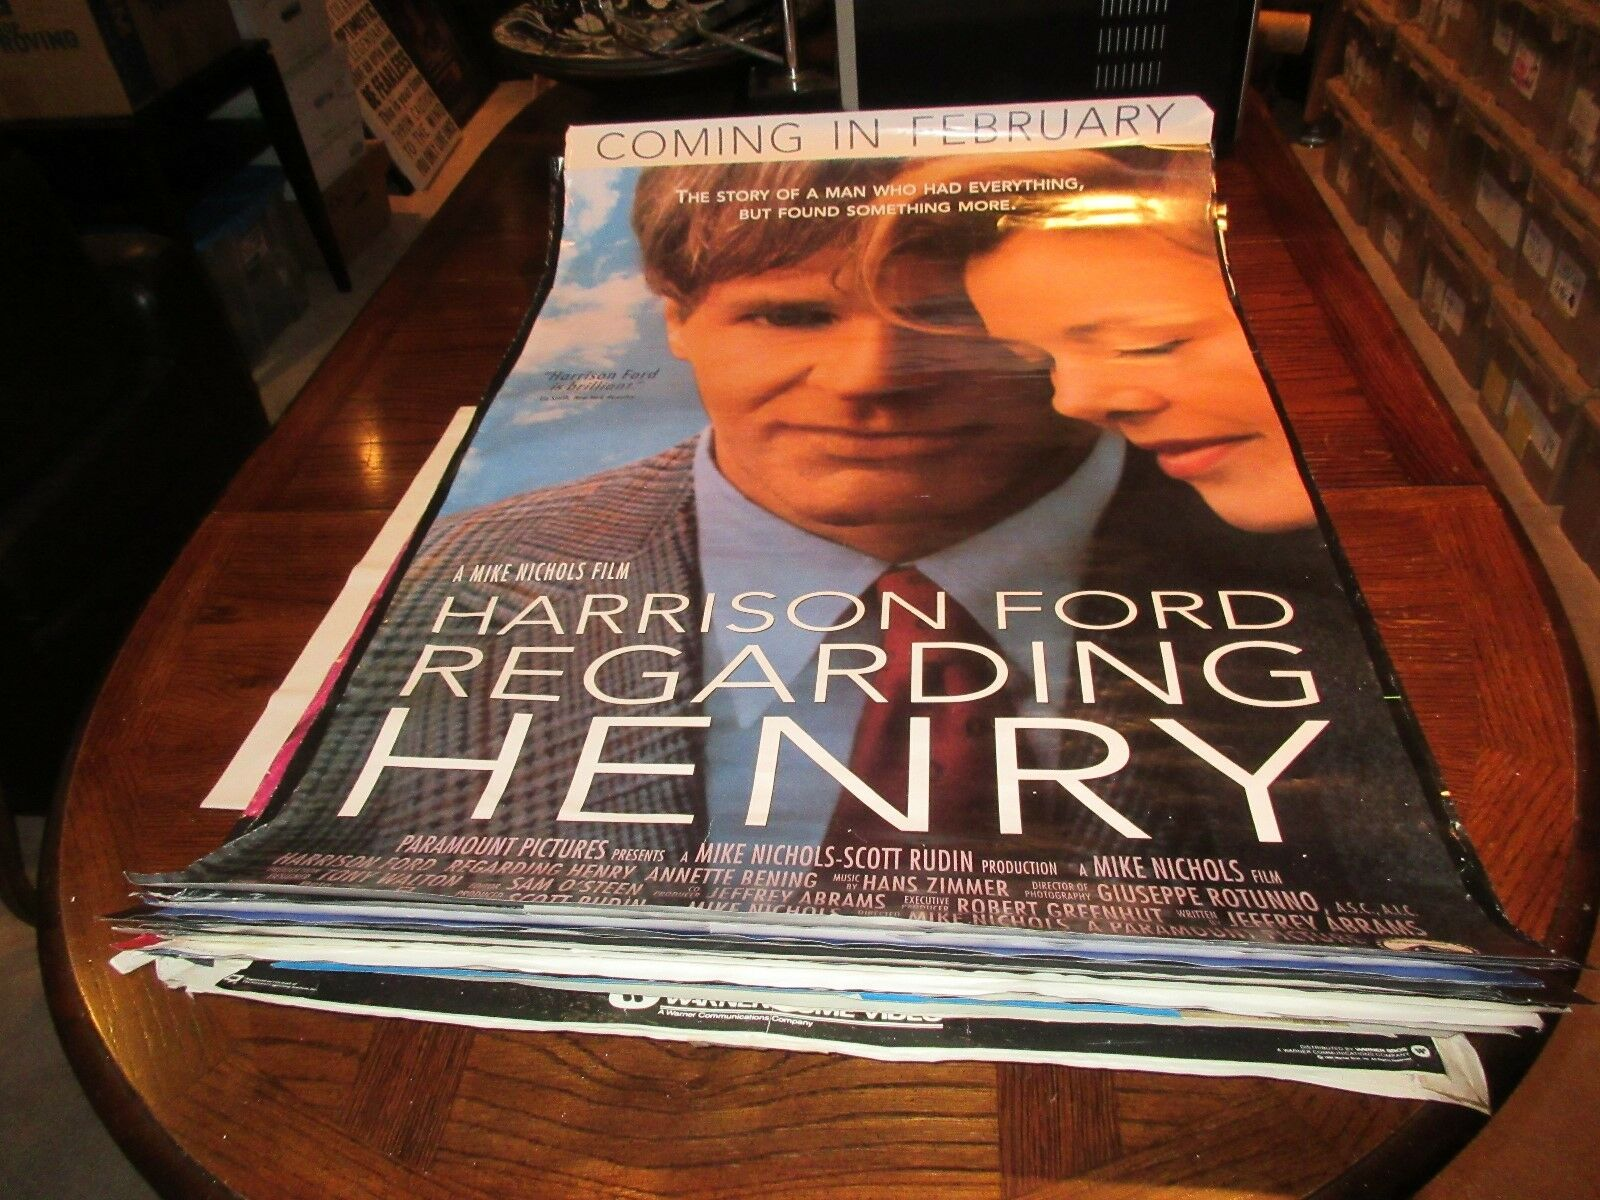 "Regarding Henry , Harrison Ford , POSTER , 1991 , 27"" X"